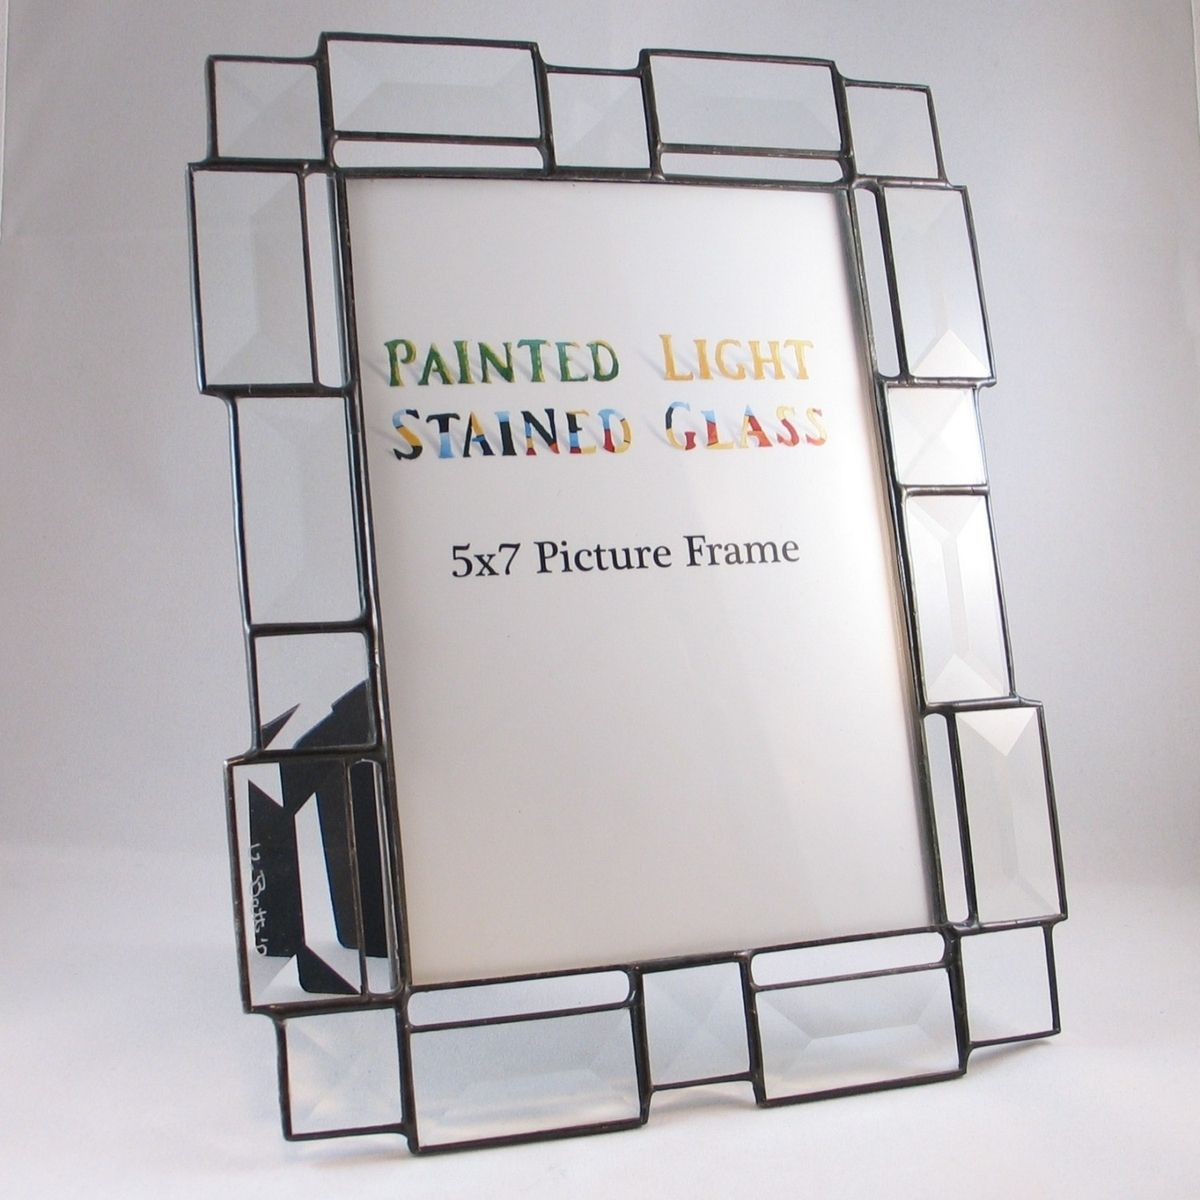 Custom Made 5x7 Stained Glass Bevel Picture Frame by Painted Light ...